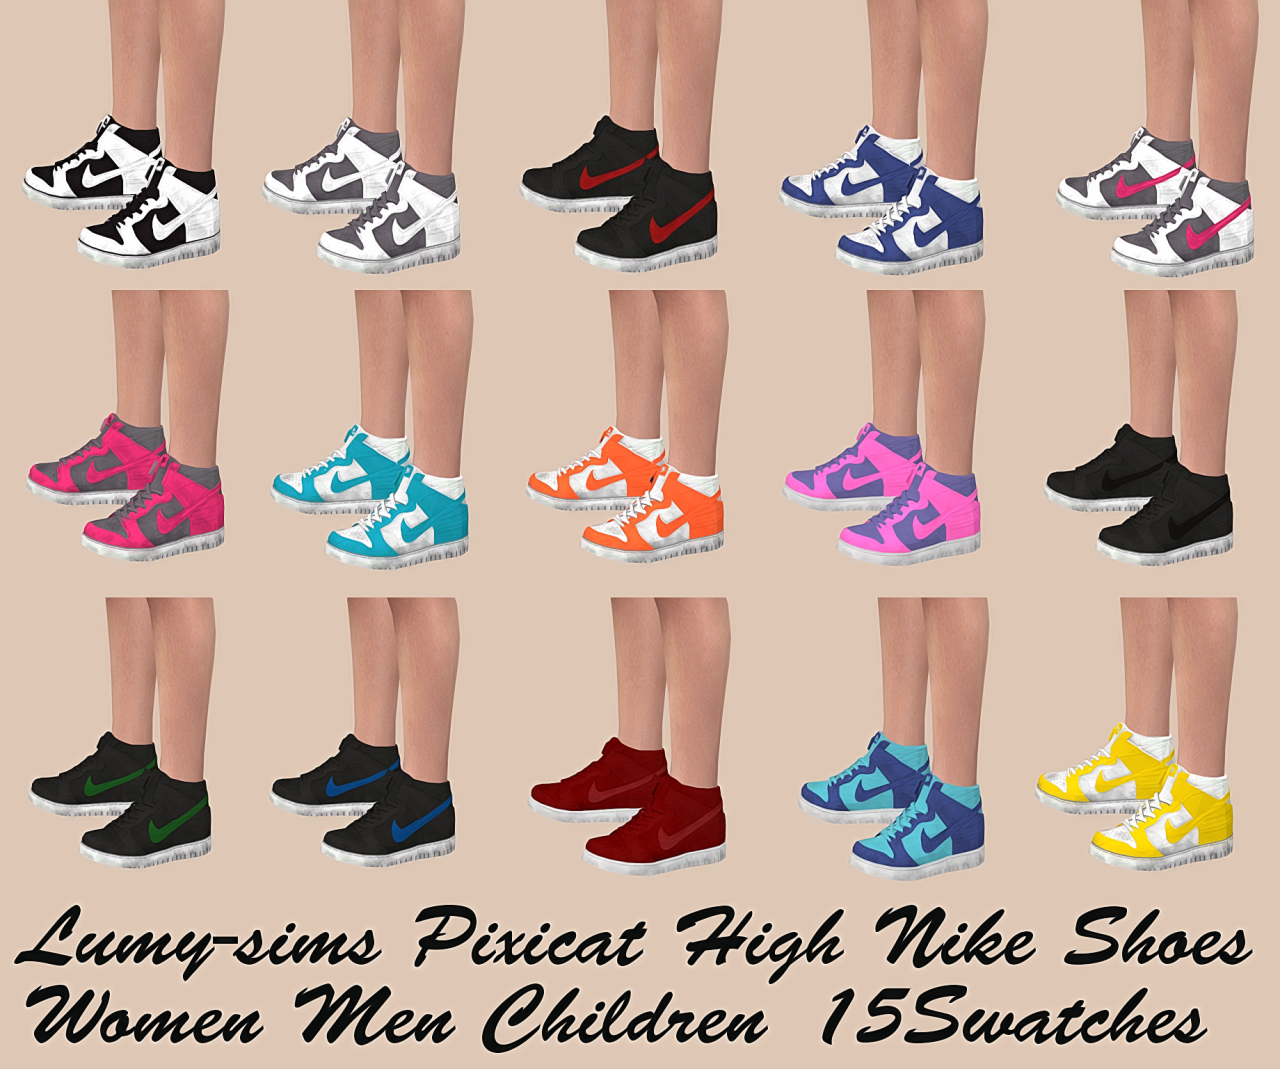 Lana CC Finds - lumy-sims: High Nike Shoes conversion Enabled.